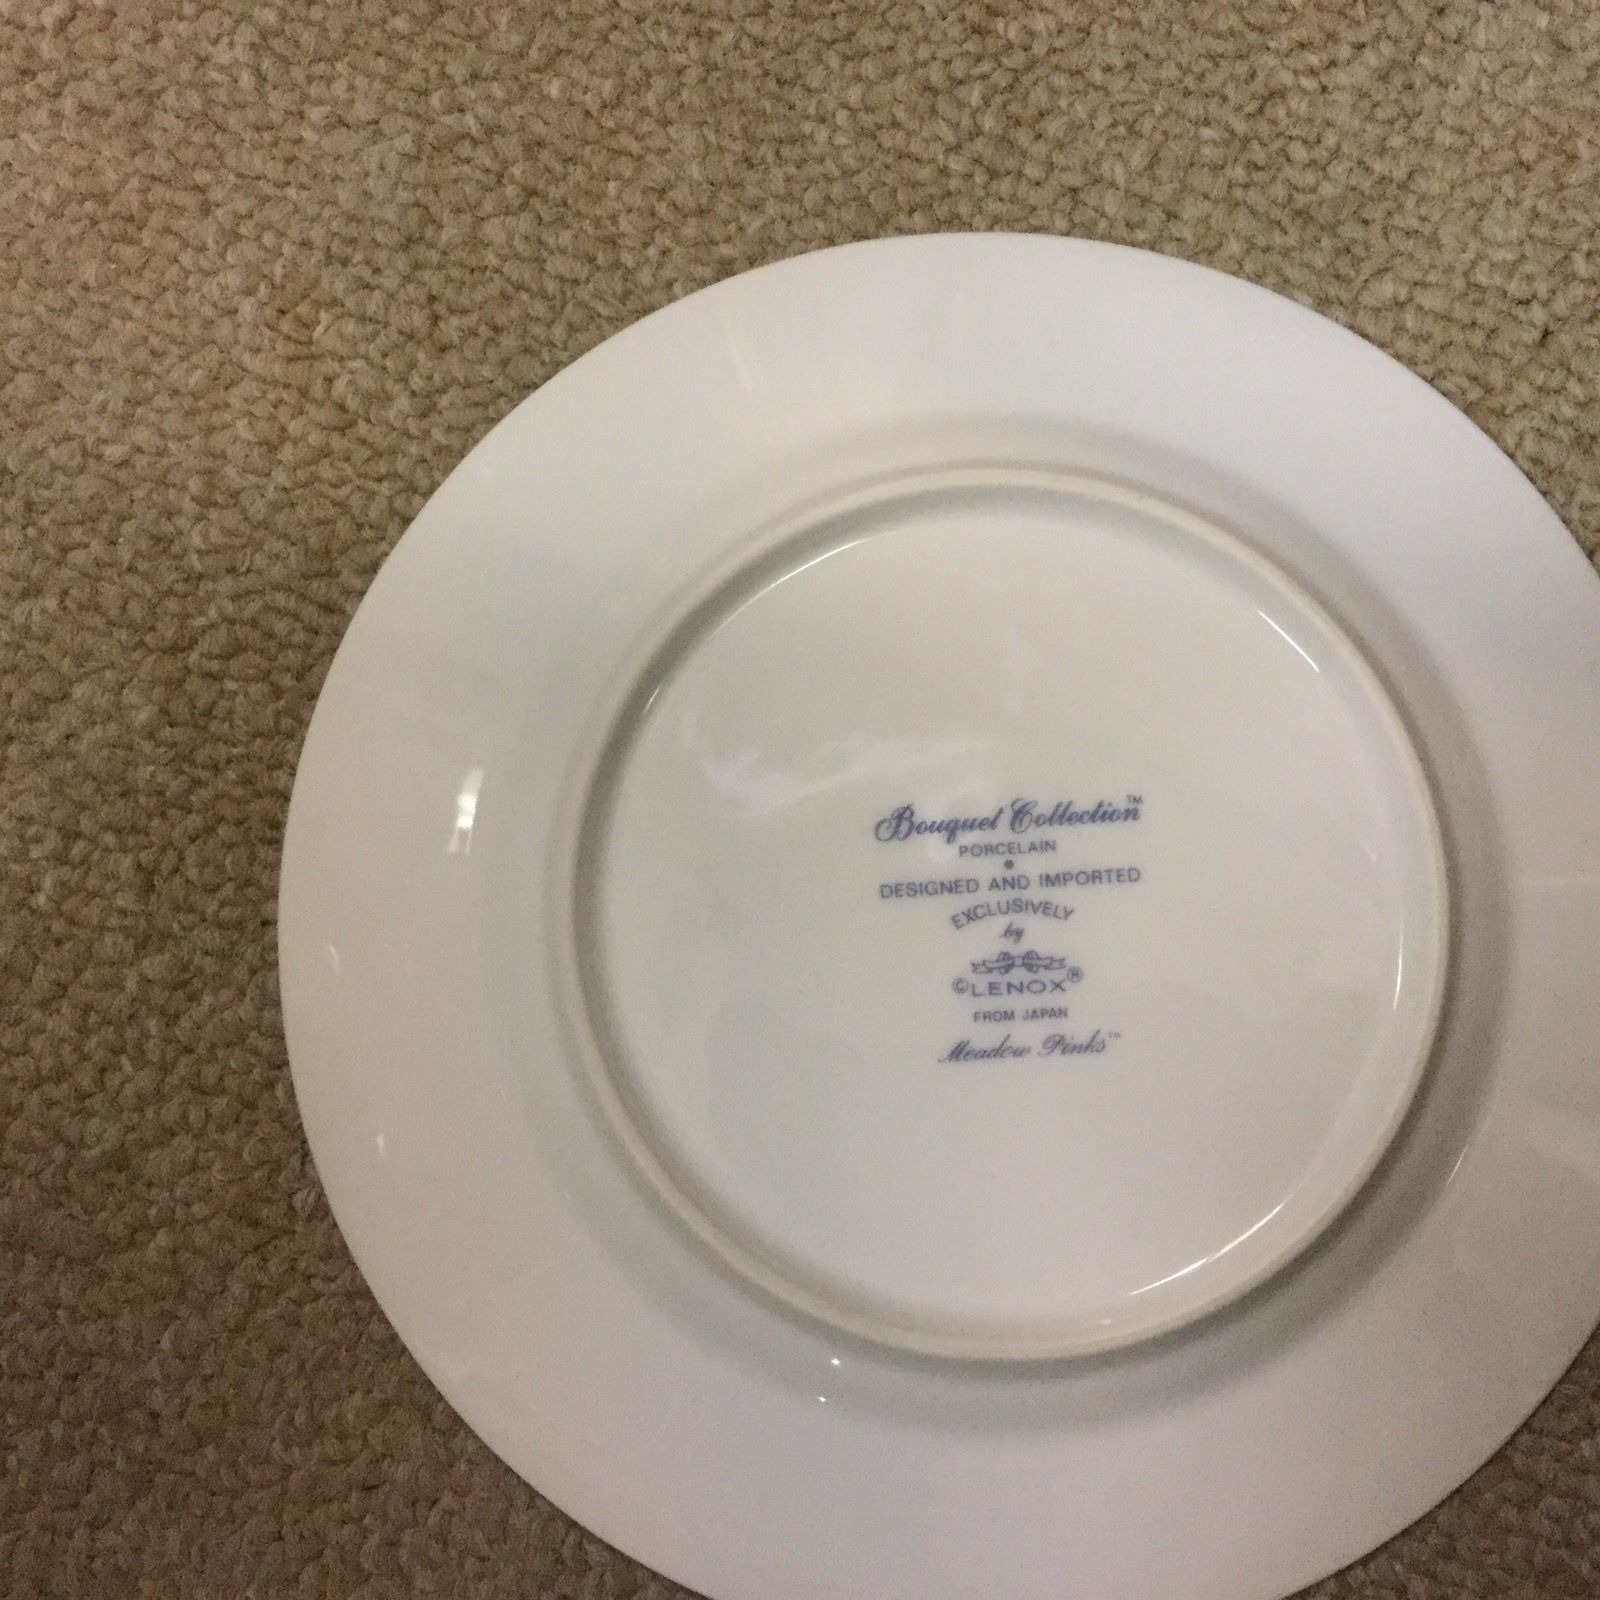 Lenox China Set Bouquet Collection Meadow Pinks From Japan - 16 Place Setting image 3